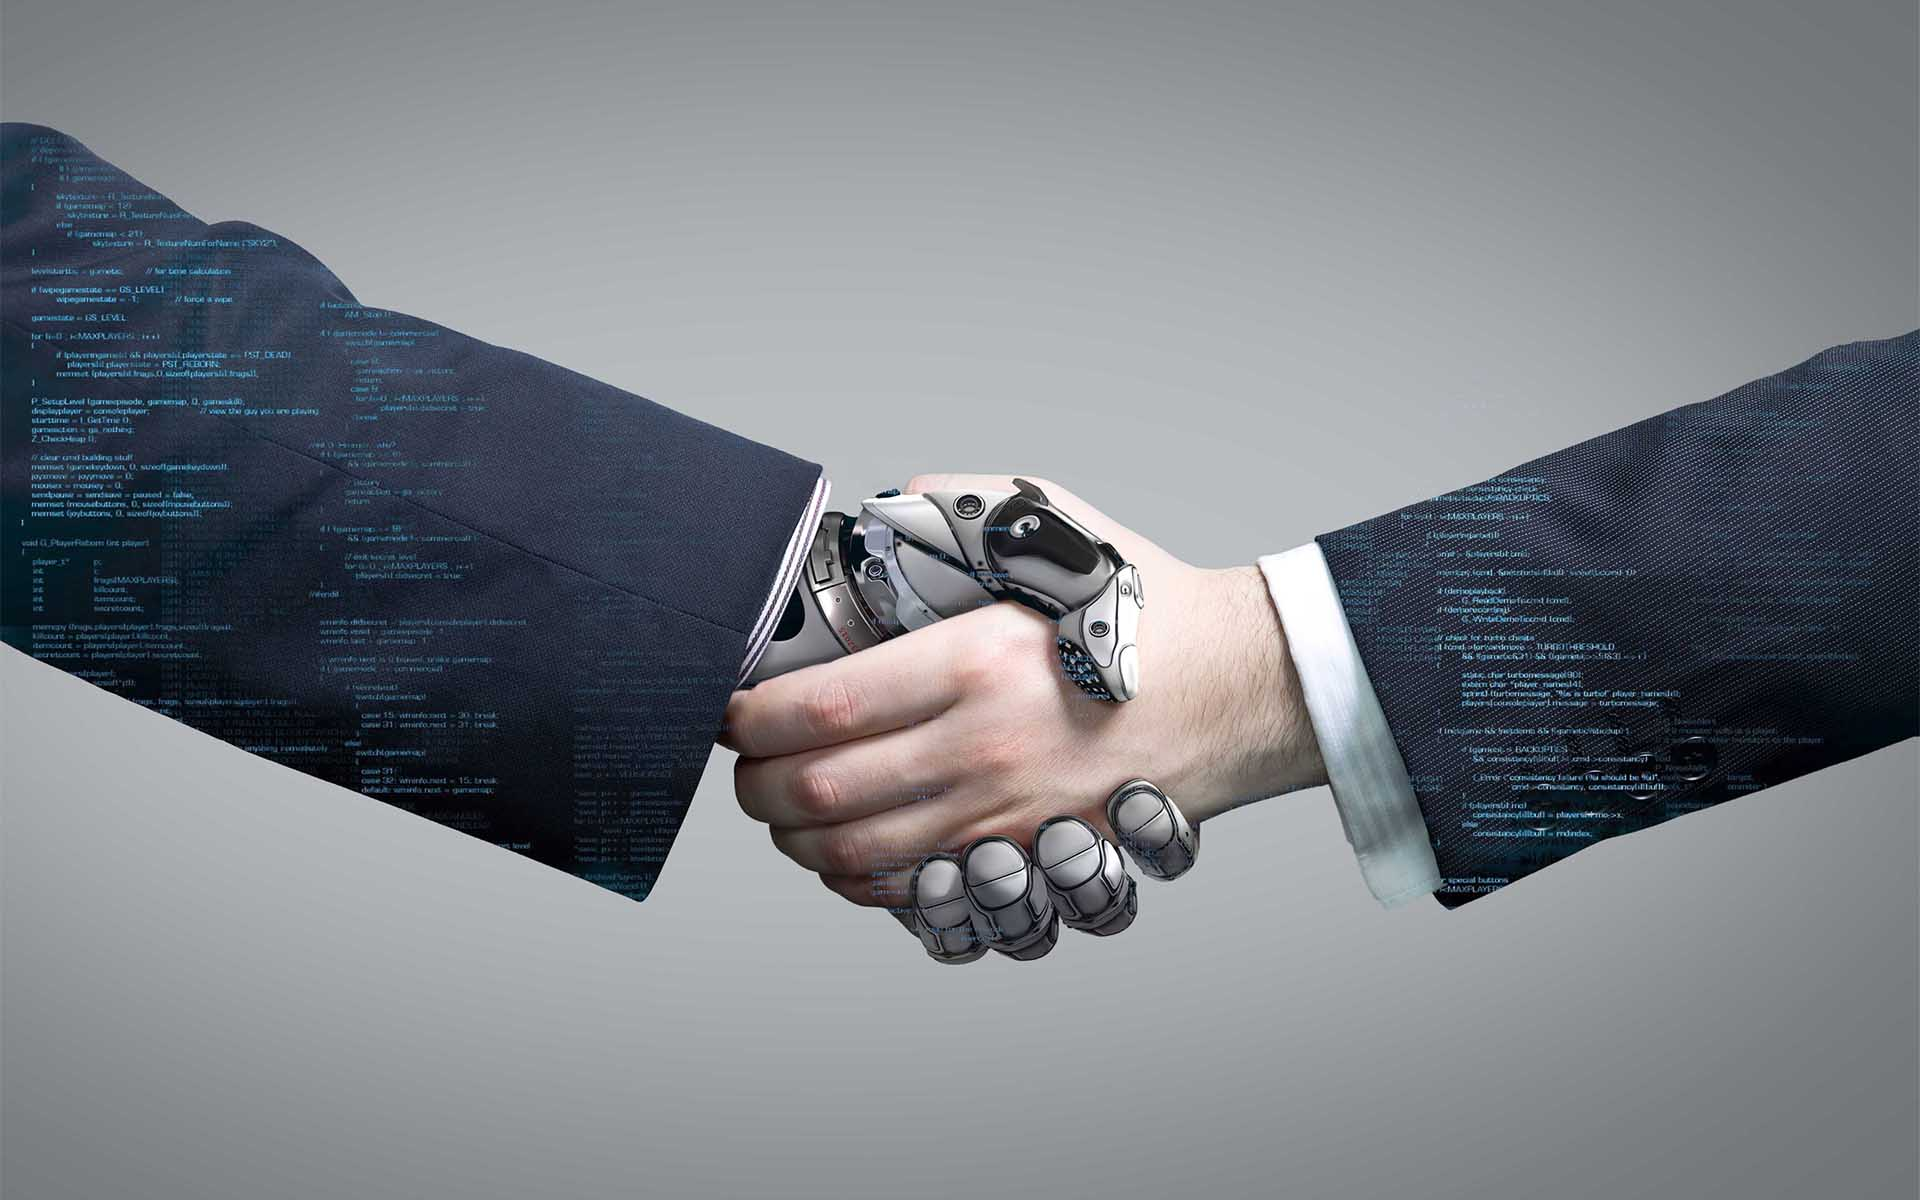 Aitheon Wants to Create Jobs with Robots and AI